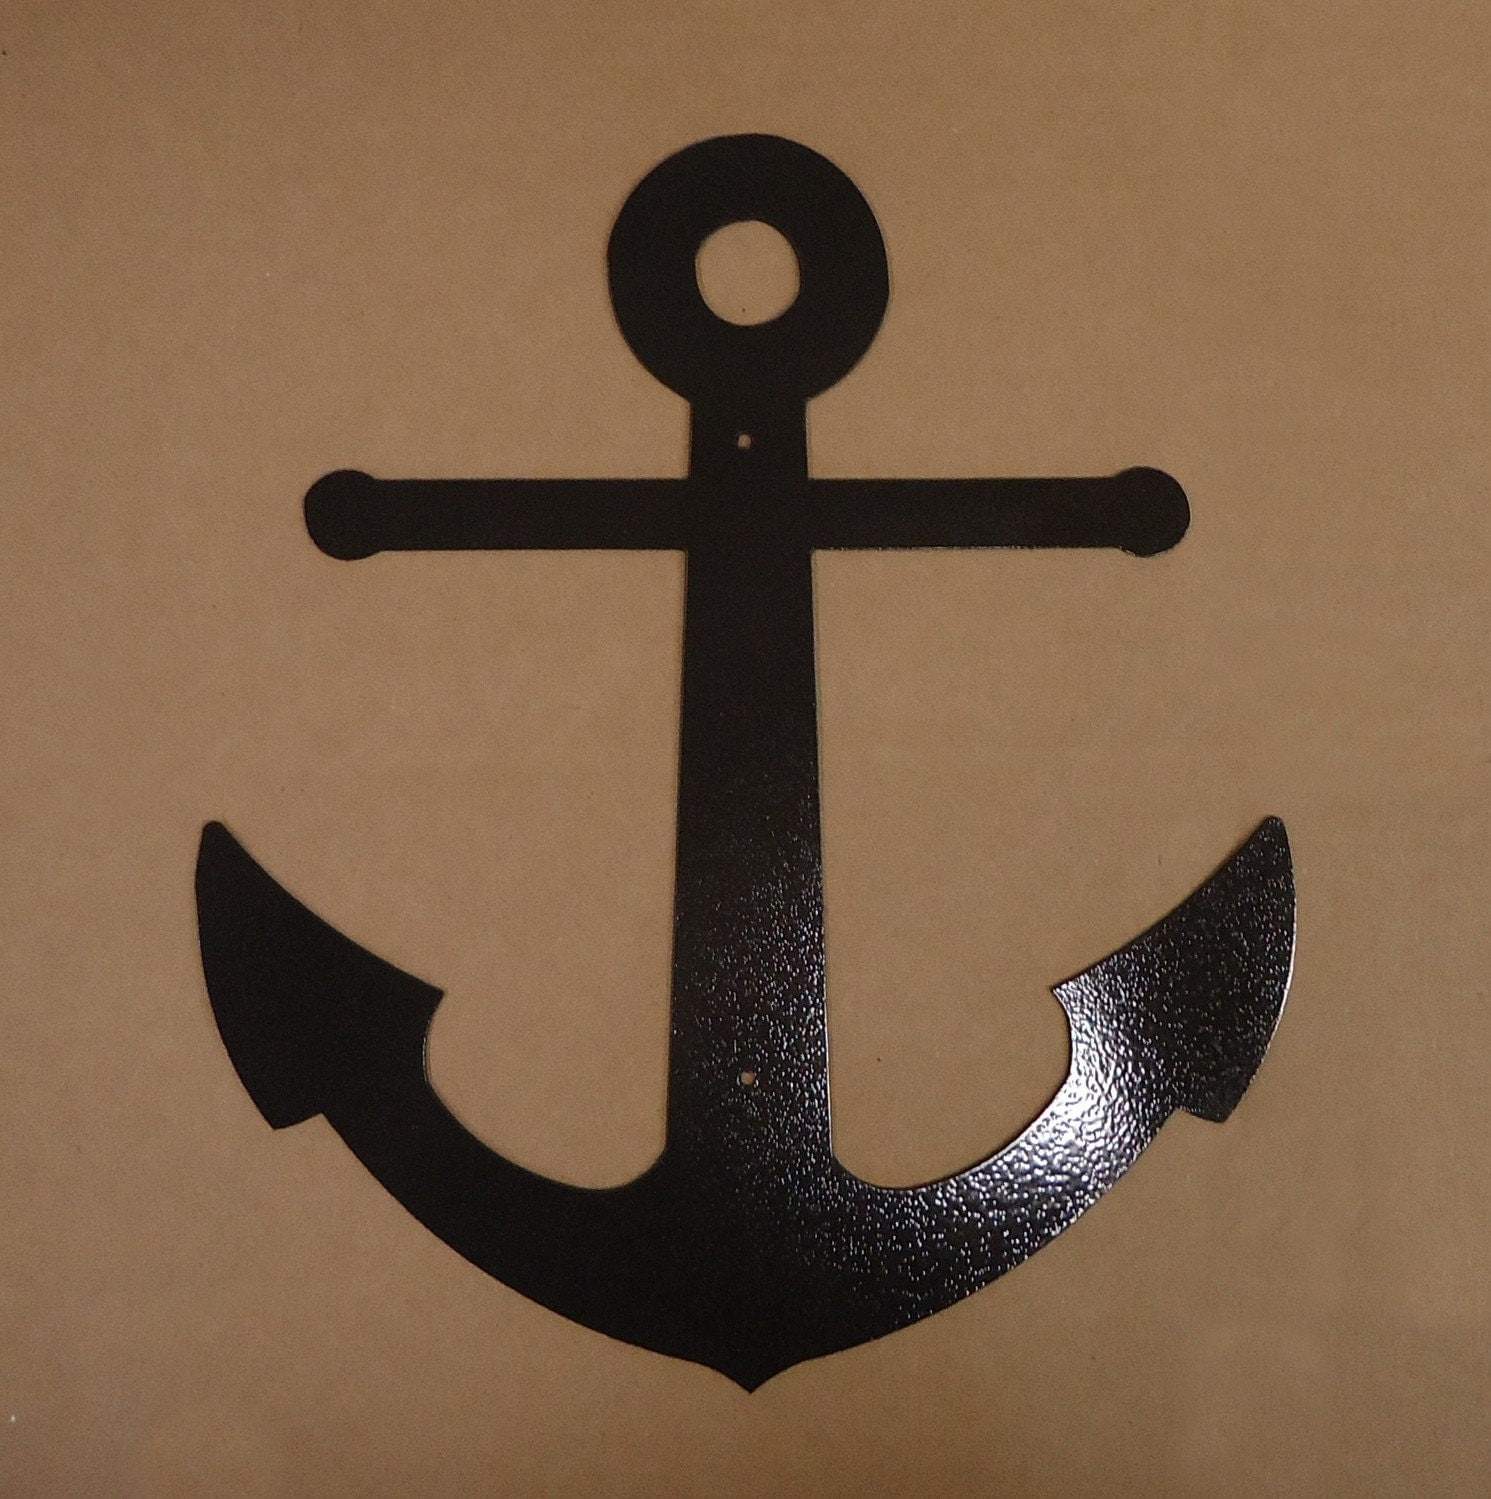 Anchor Wall Decor Metal : Anchor metal art free usa shipping by knobcreekmetalarts